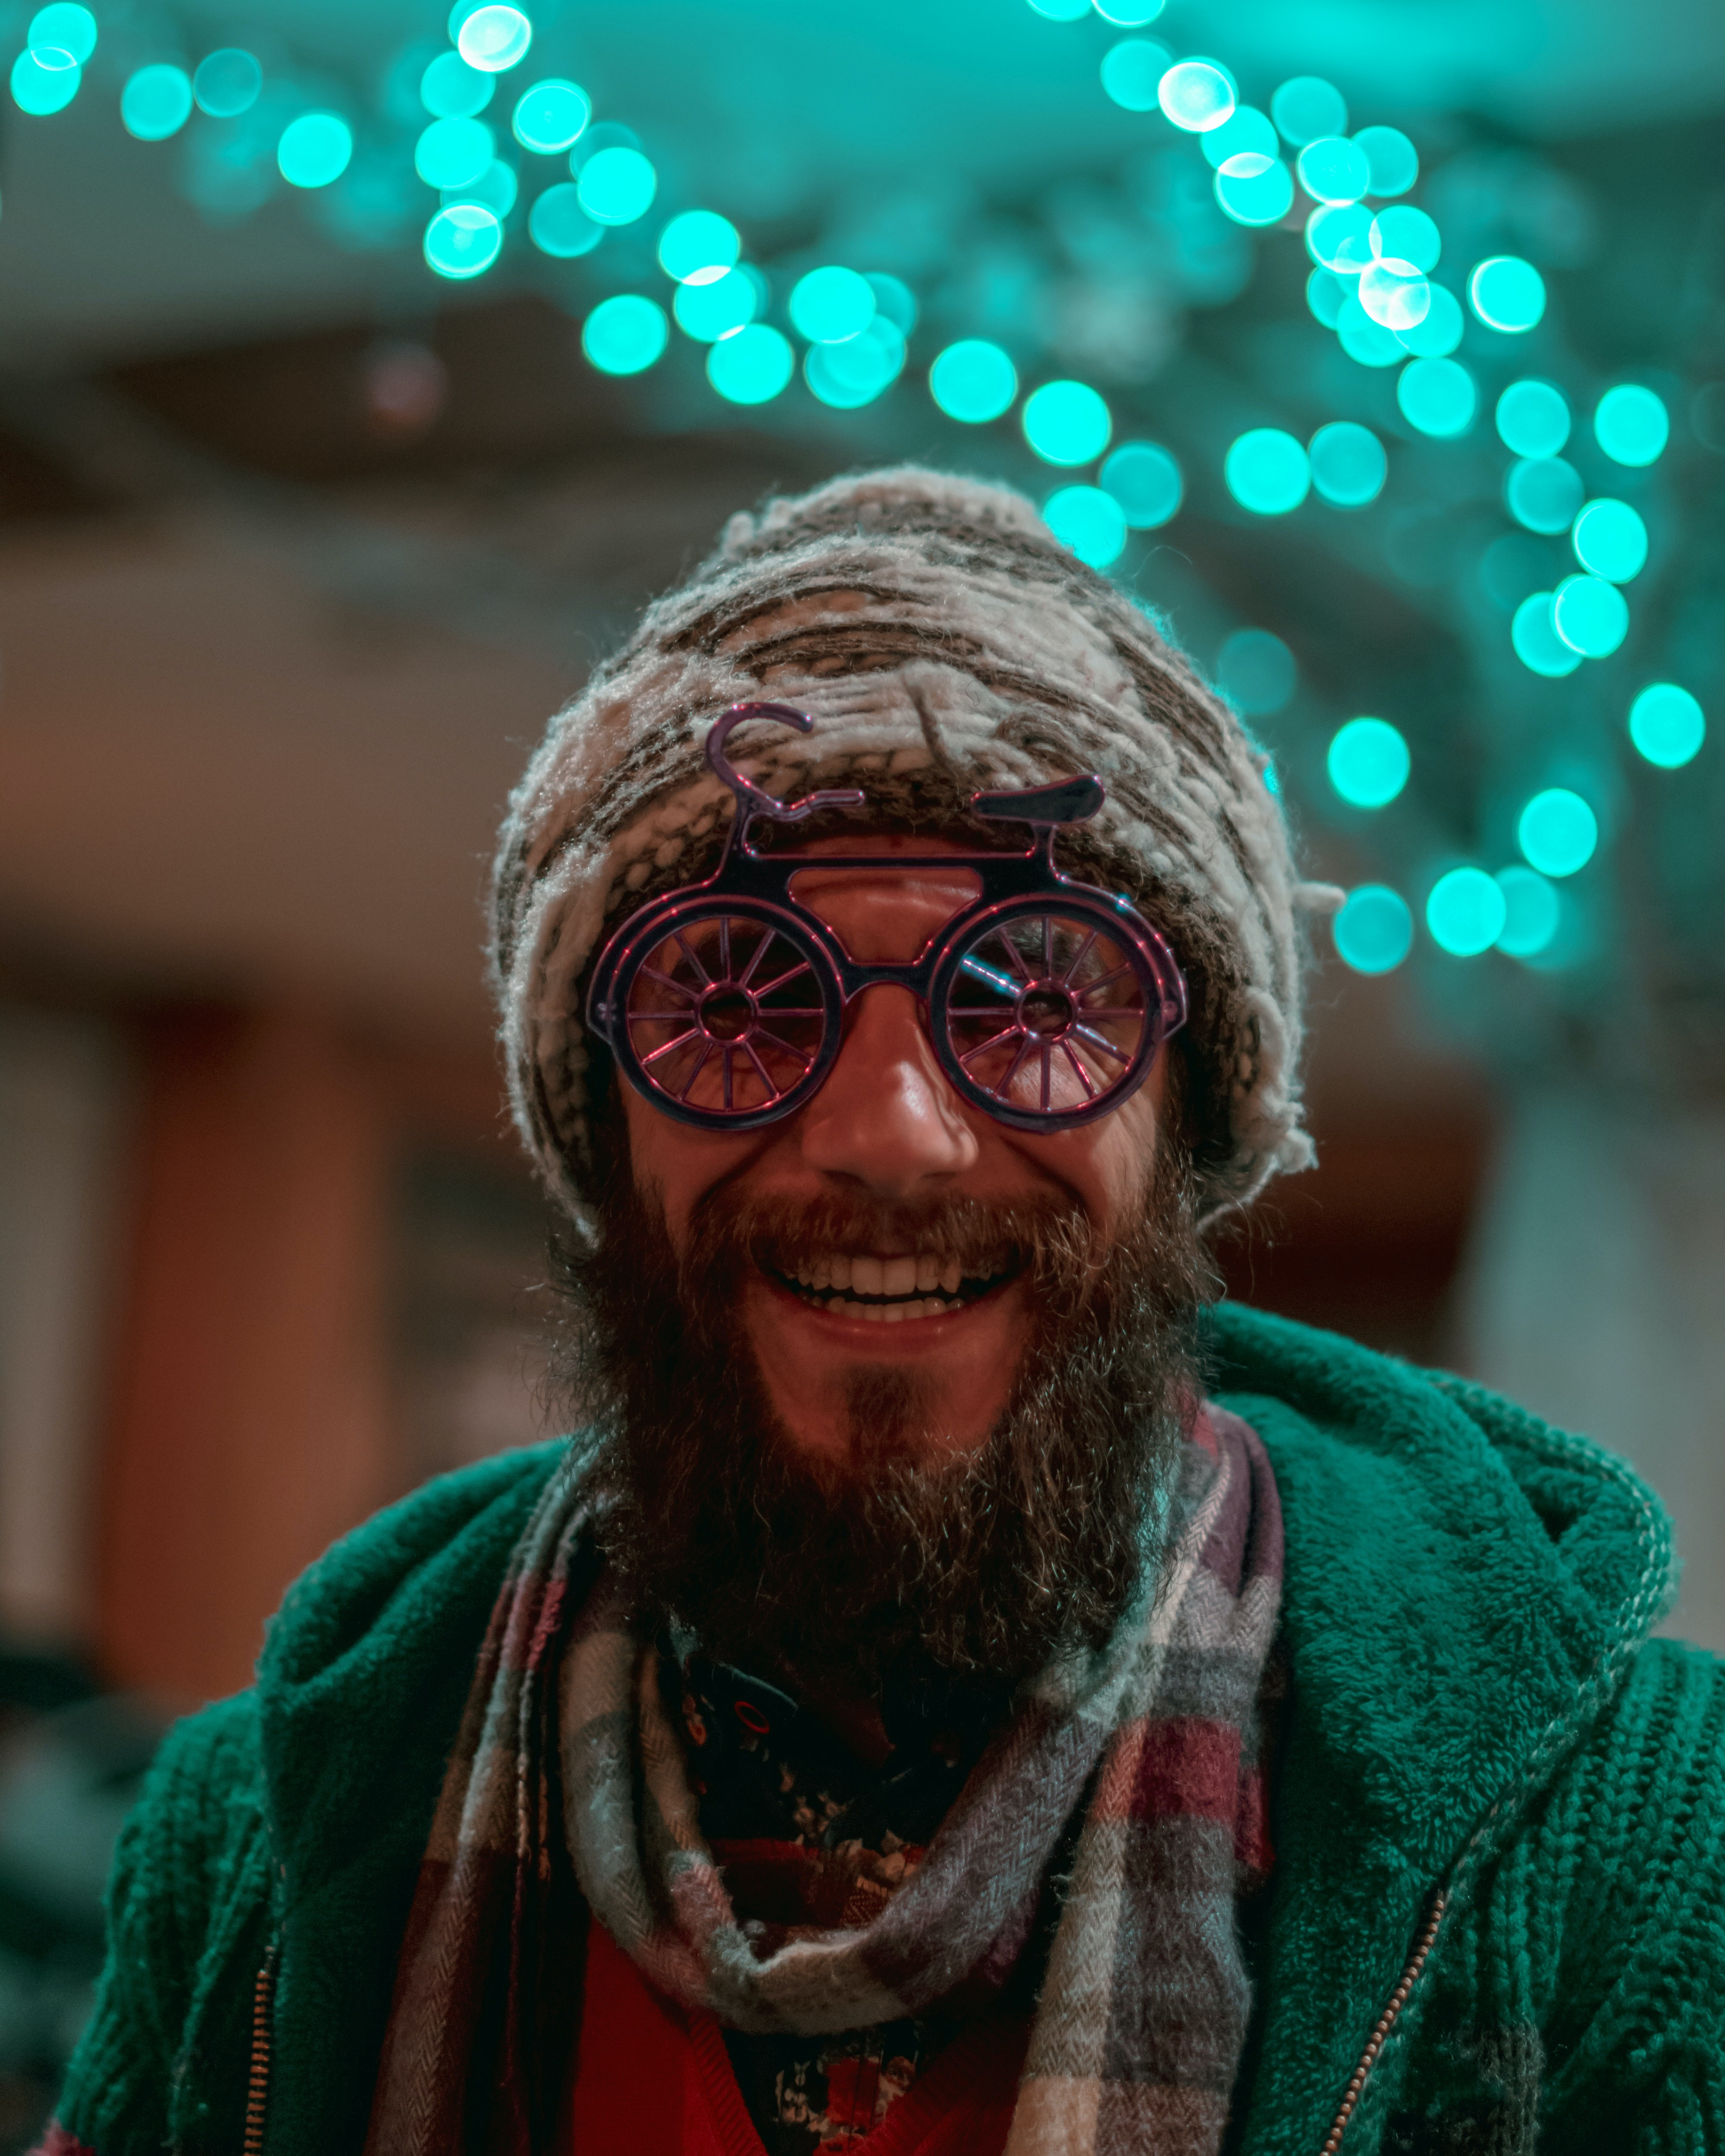 Photo by Armin Lotfi on Unsplash. Goofy, fun looking bearded buy with wacky glasses on smiling